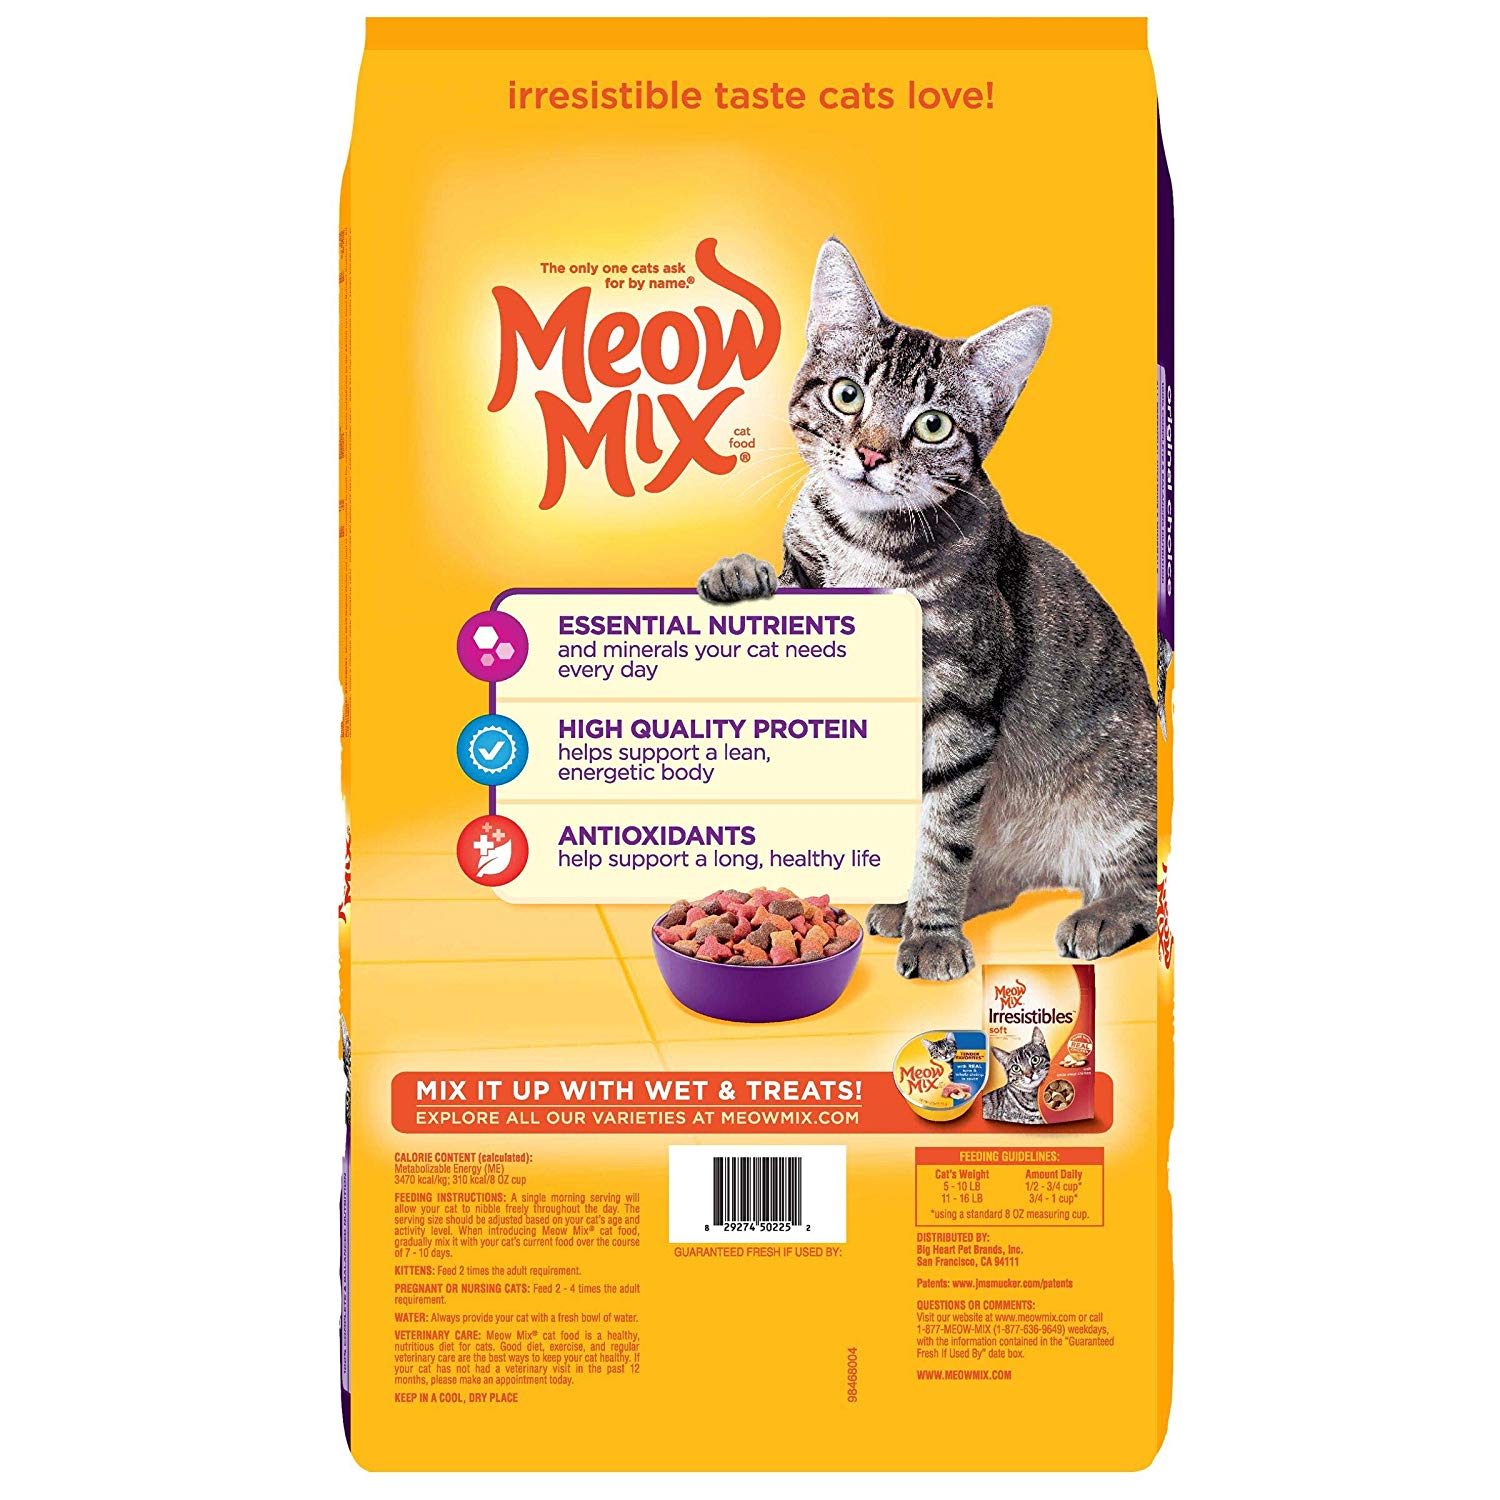 Meow Mix Best Dry Cat food